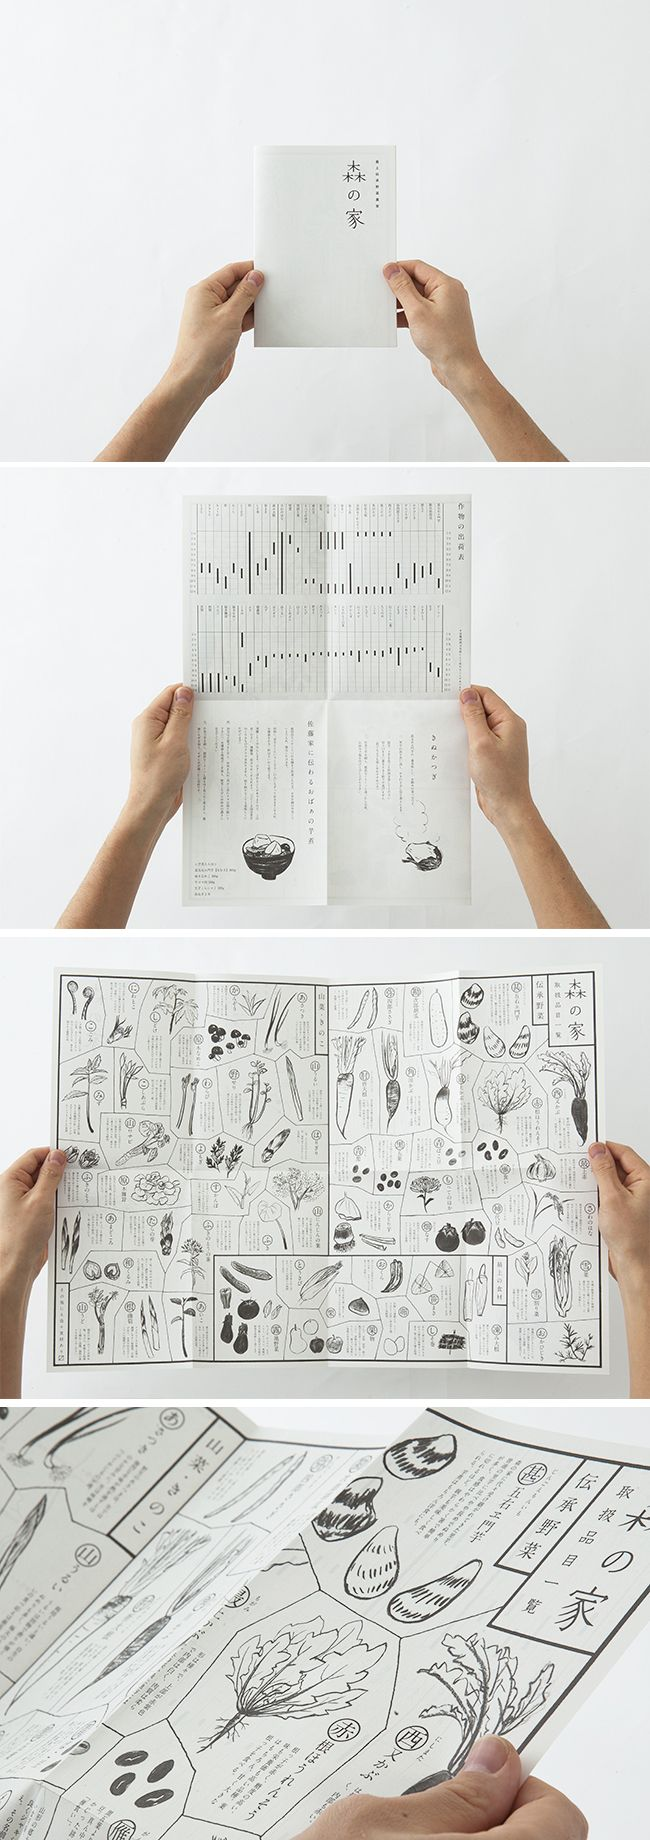 Motoki Koitabashi.Yoko Hino. 2009. Akaoni Design. Japan, Yamagata [ONLINE] Available at: http://www.akaoni.org/works/morinoie-panp.html. [Accessed 12 August 2015].